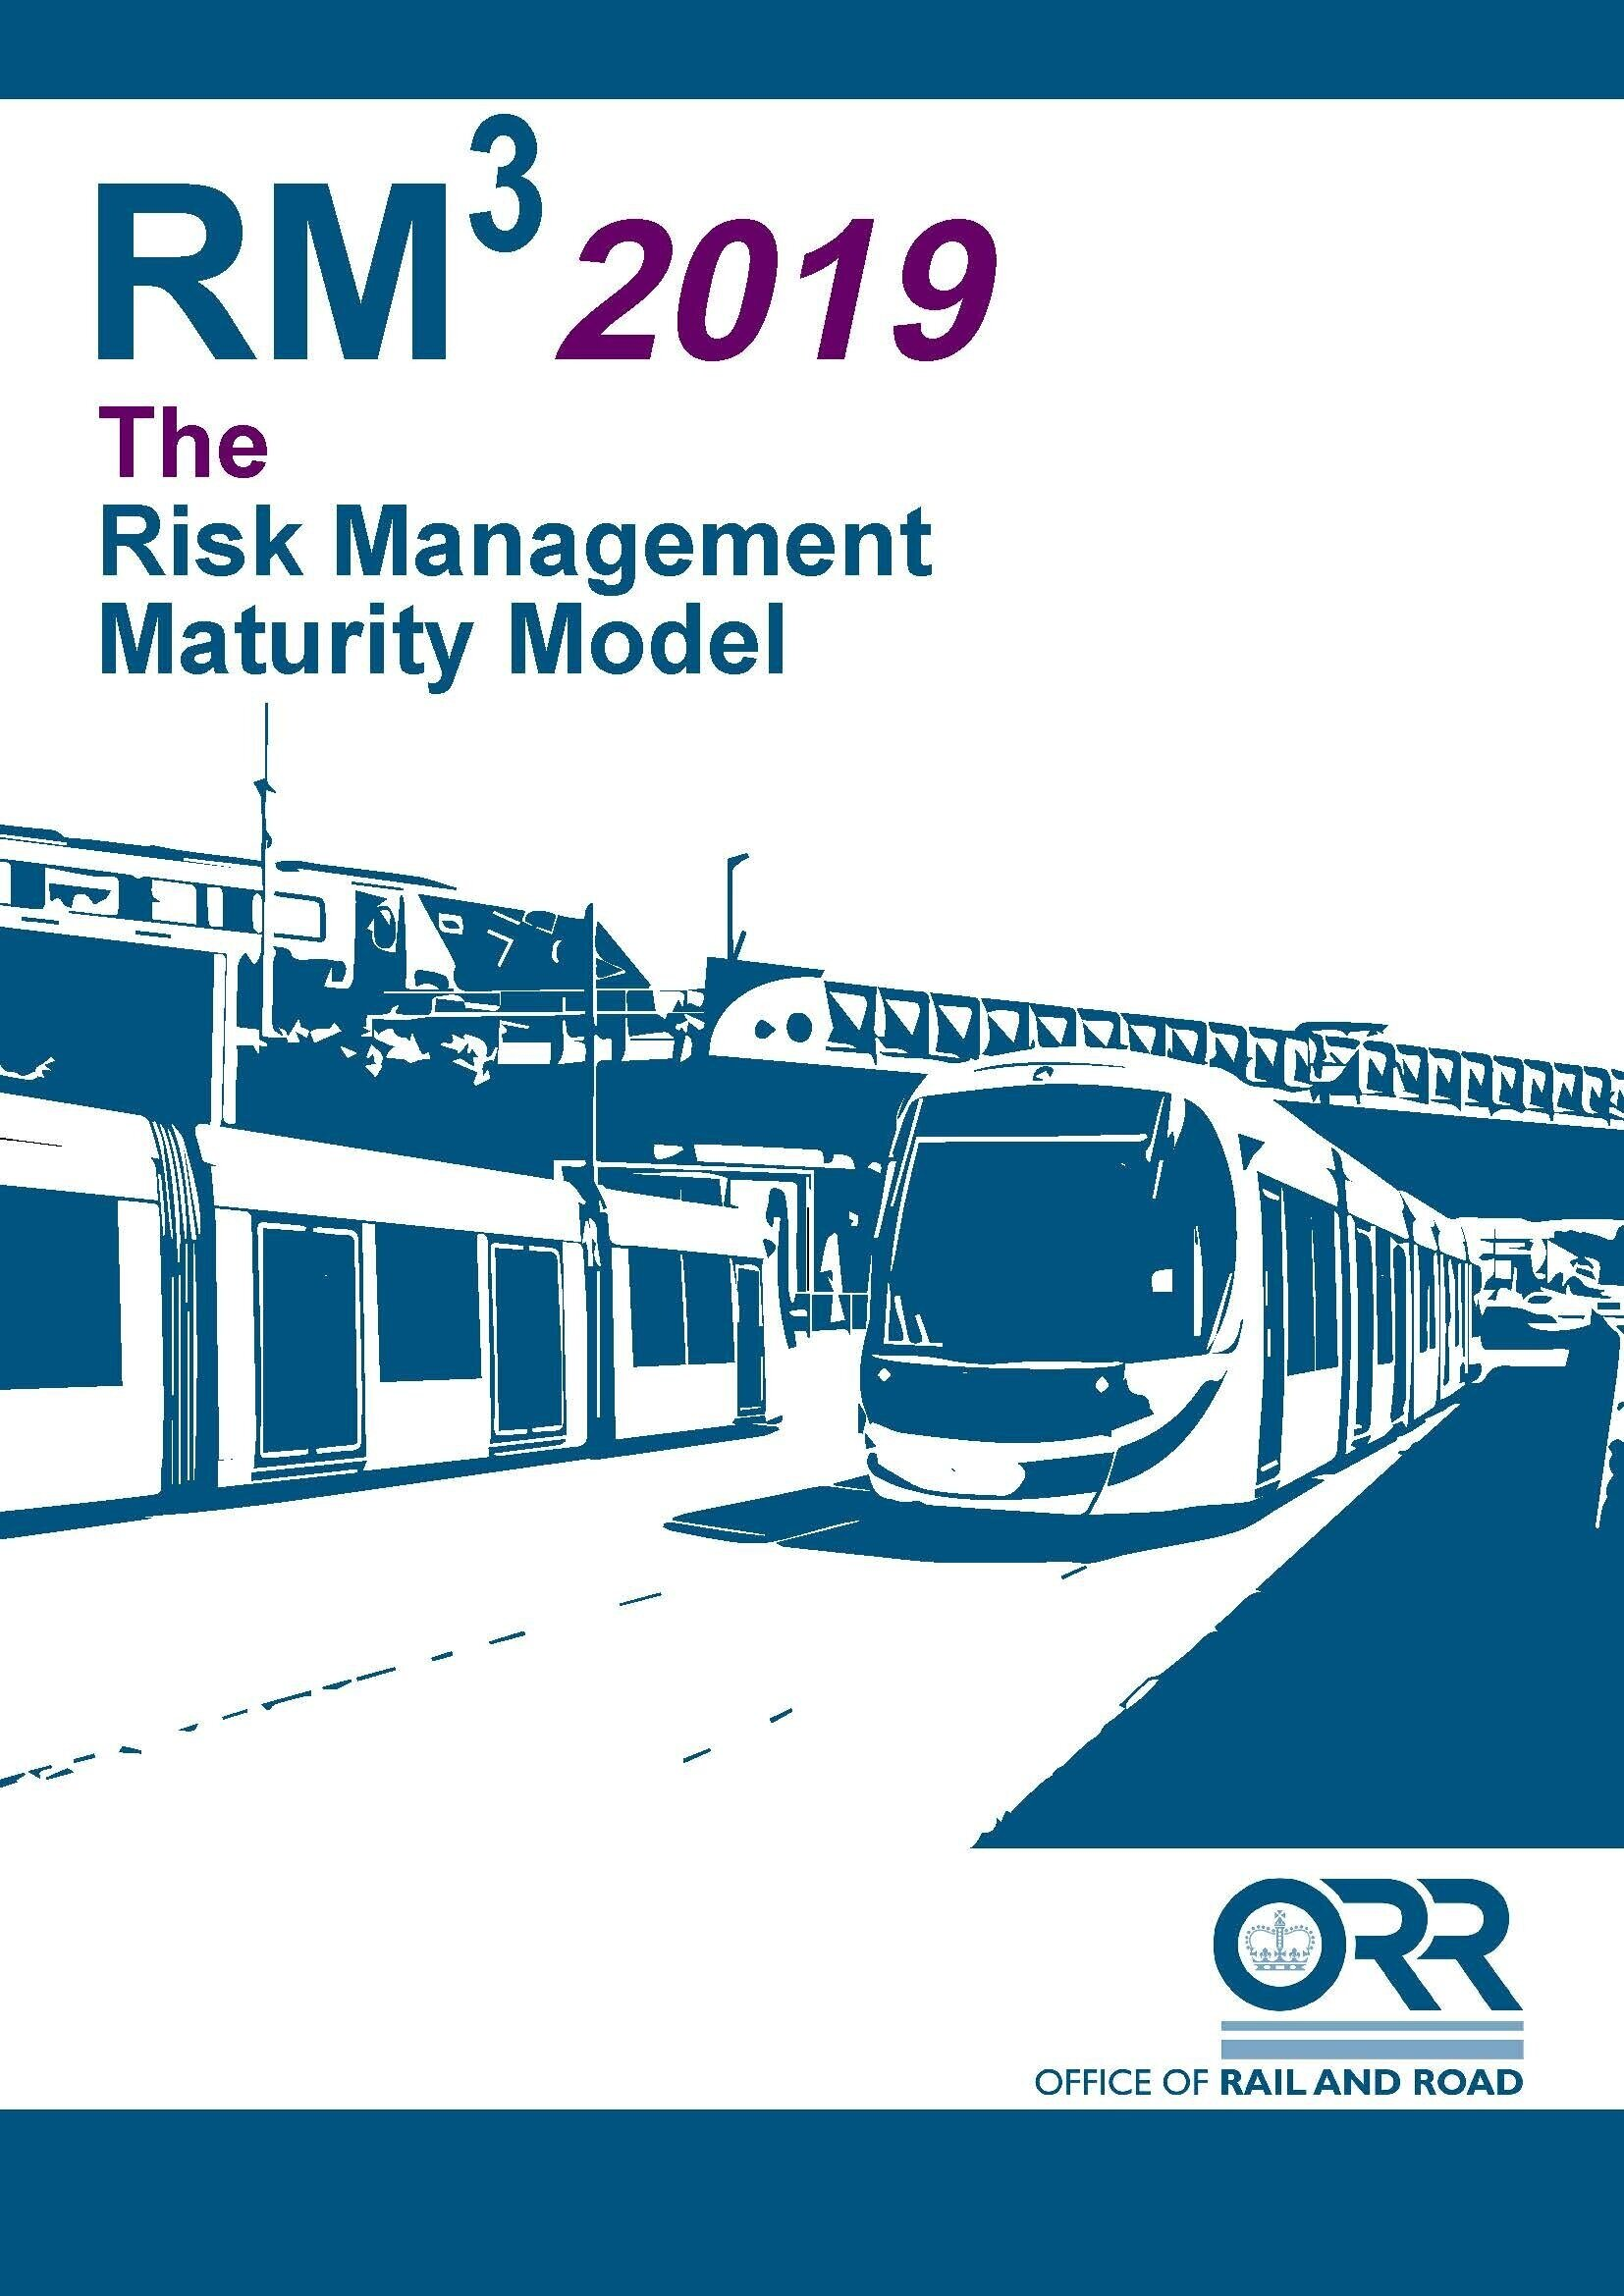 Pages+from+risk-management-maturity-model-rm3+%282%29.jpg